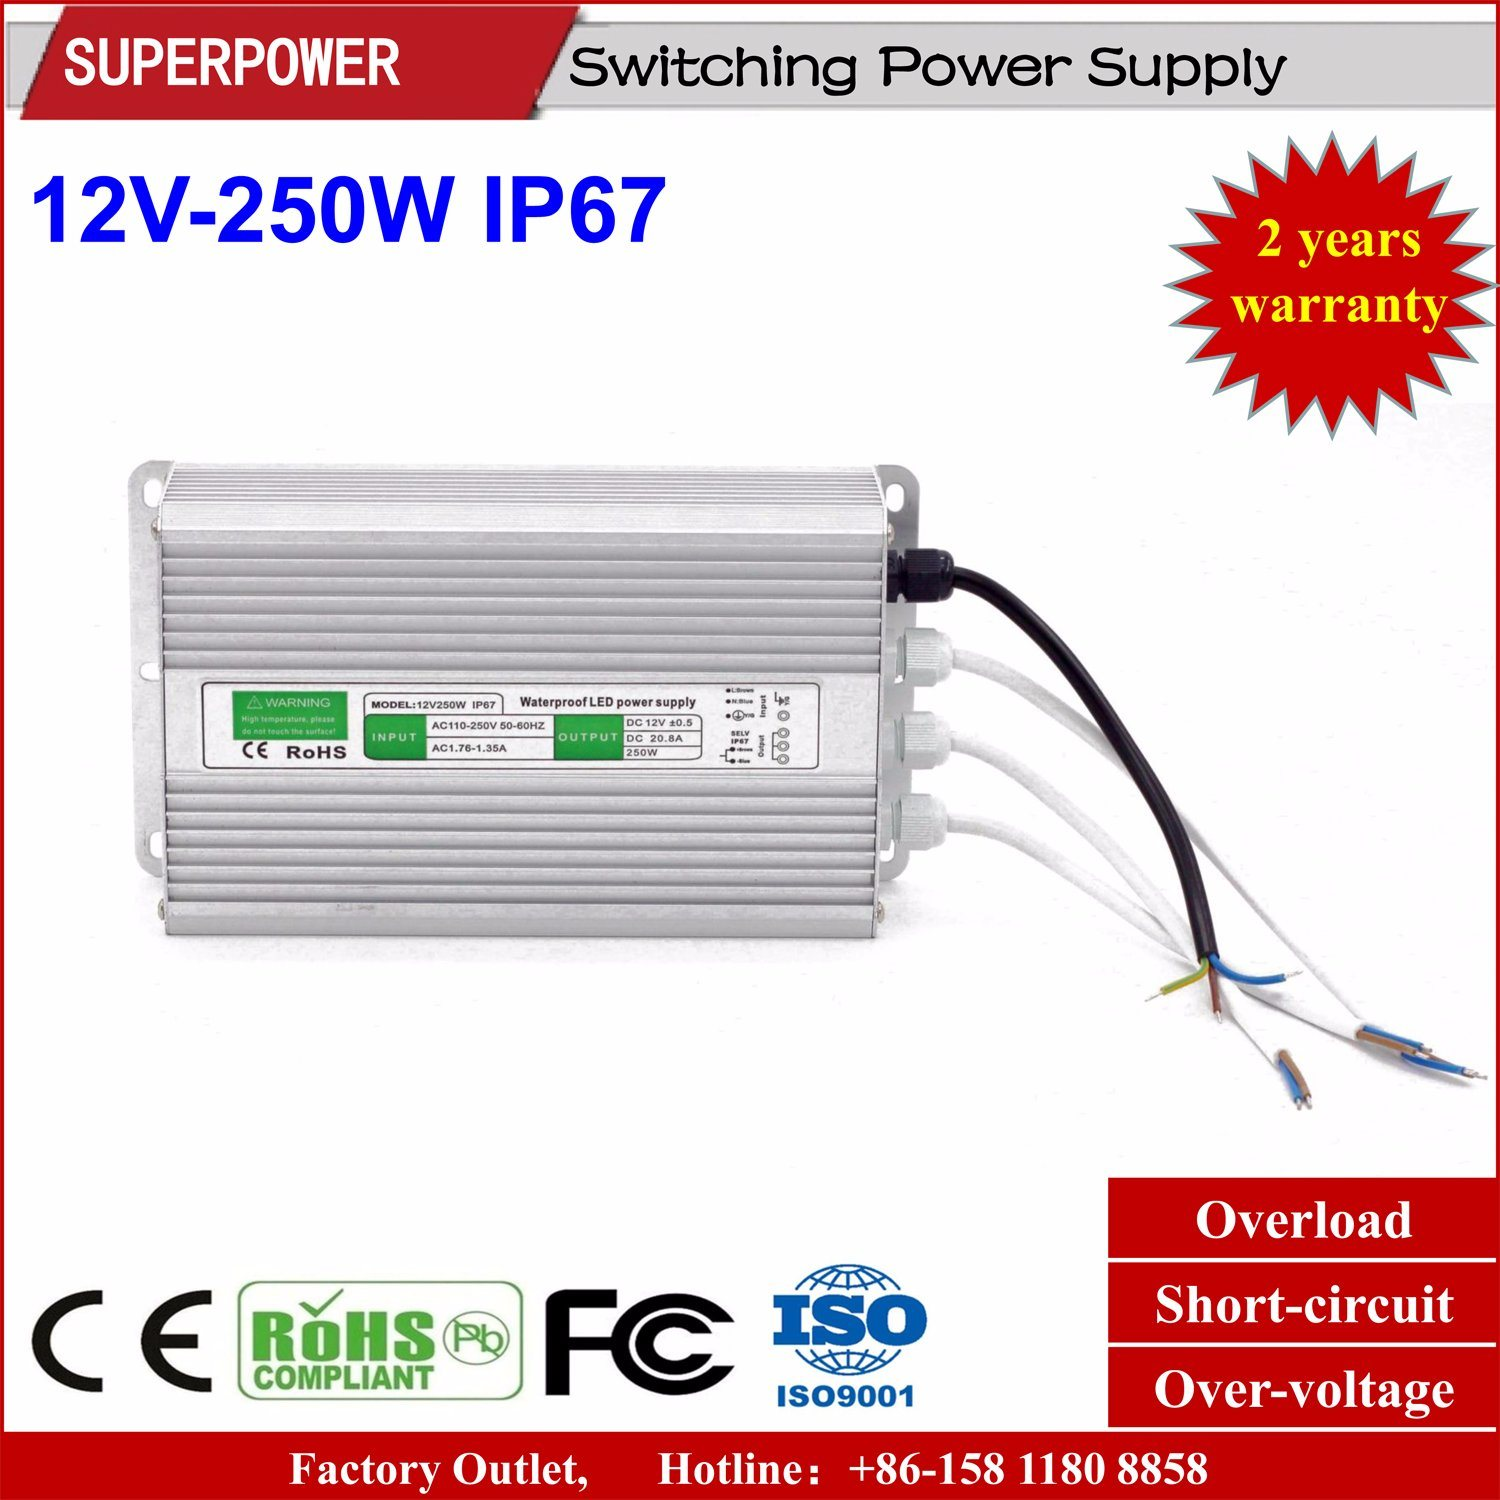 Enchanting Smps Output Voltage Gift - Electrical Diagram Ideas ...